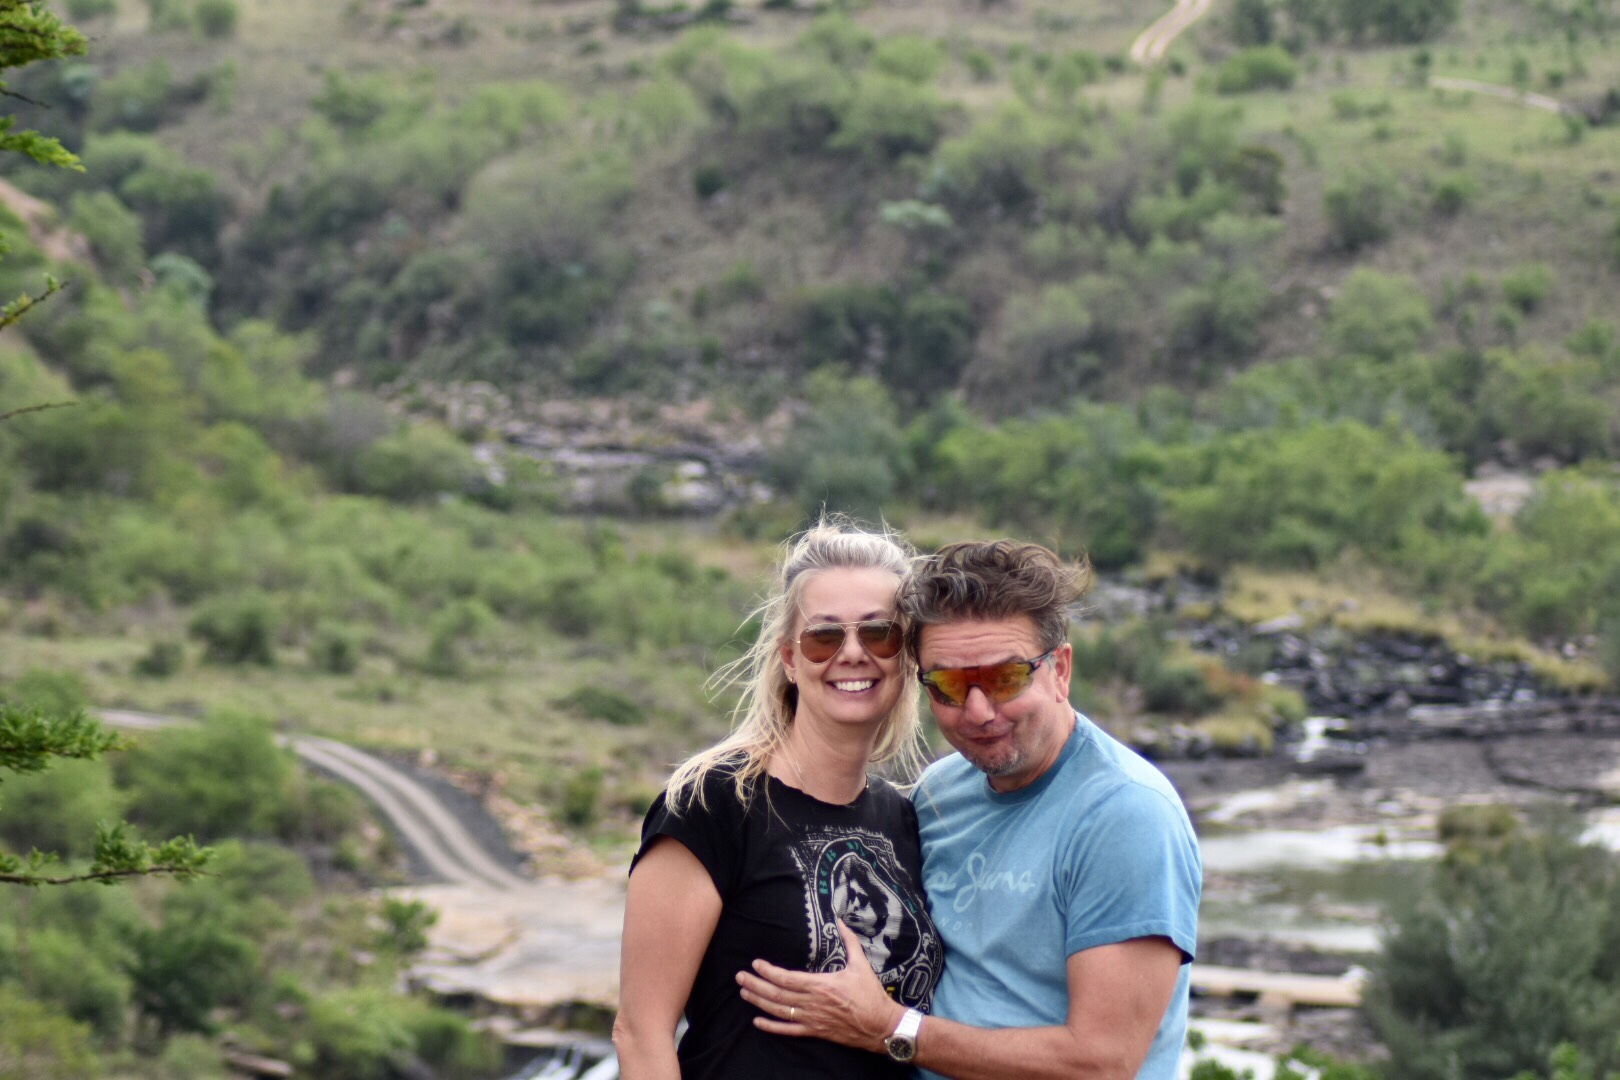 Me and husband, South Africa, 2017